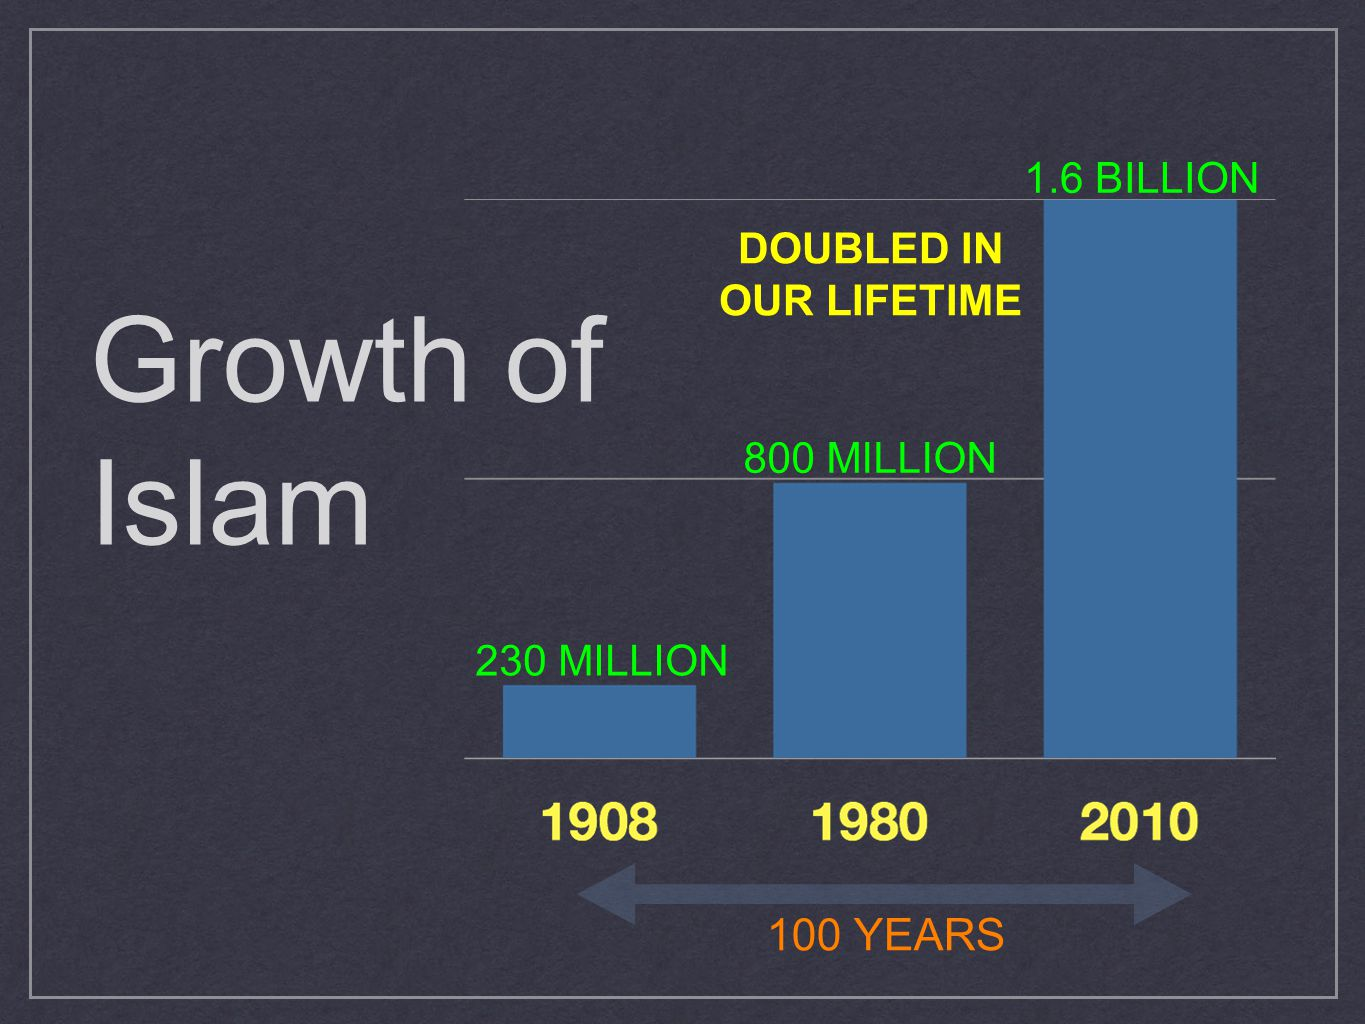 Growth of Islam 1.6 BILLION 230 MILLION 100 YEARS DOUBLED IN OUR LIFETIME 800 MILLION